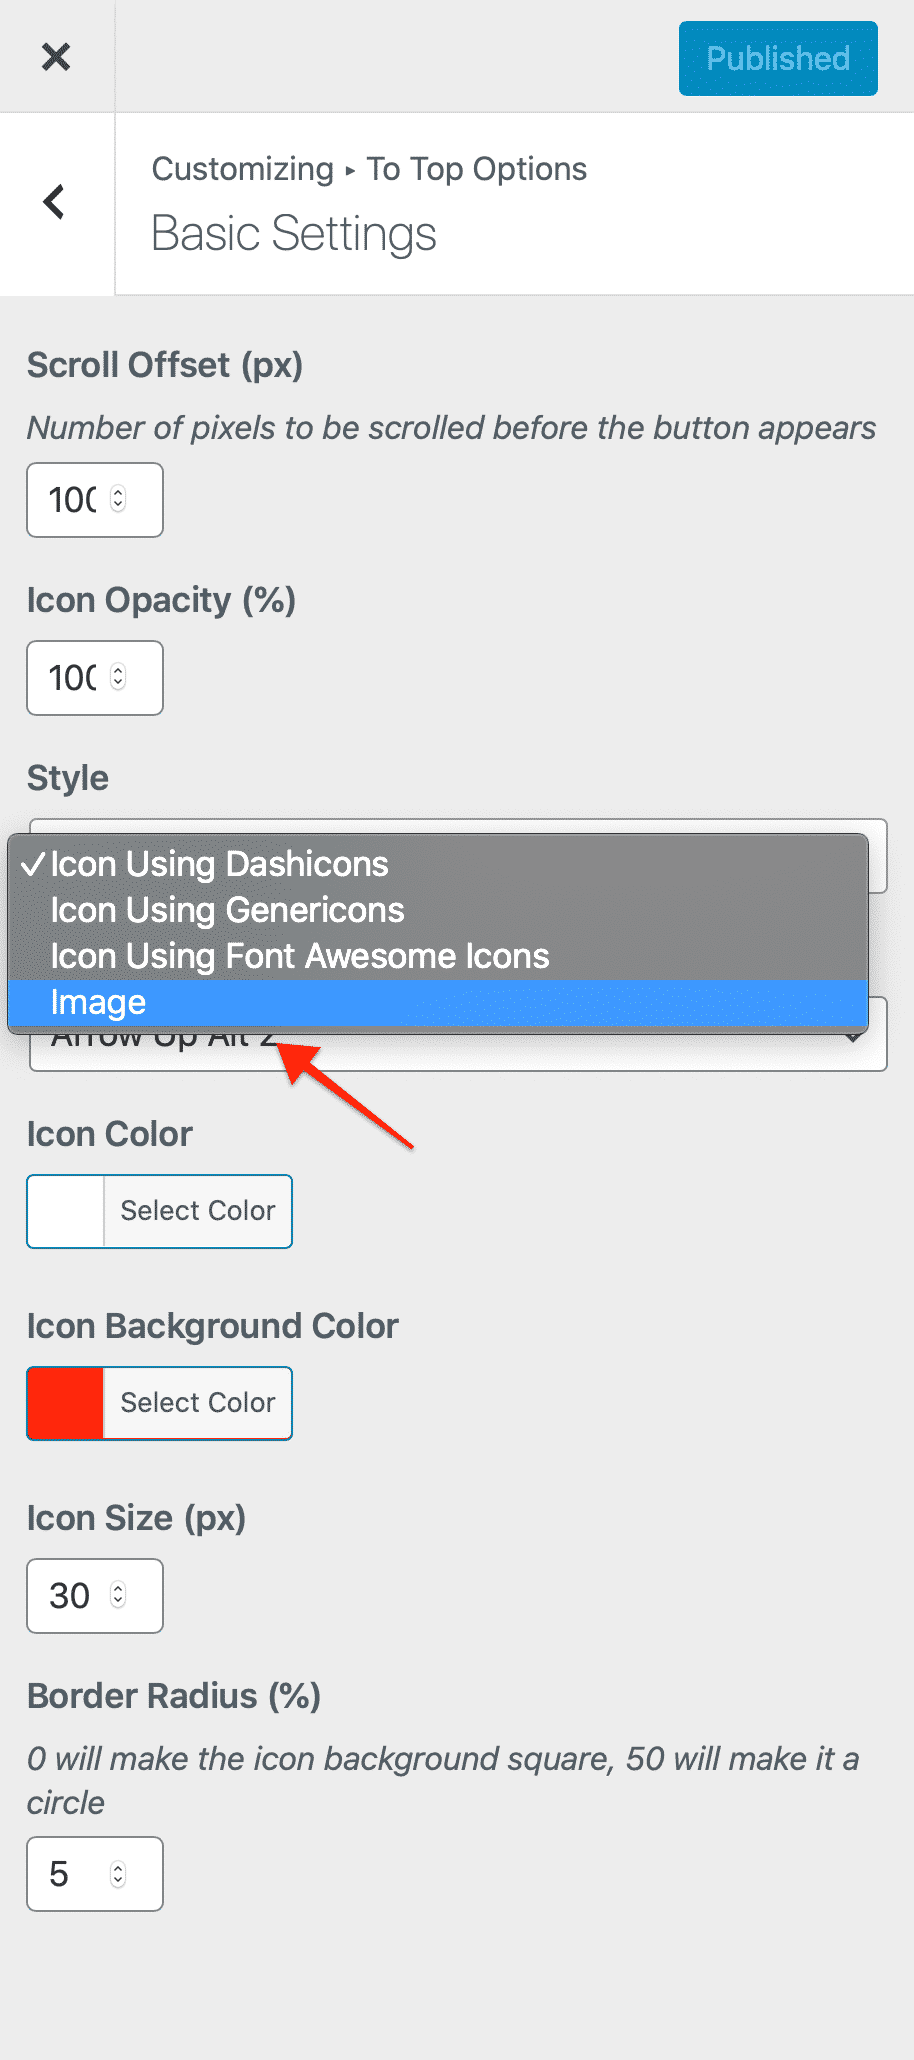 select-image-from-the-style-drop-down-menu